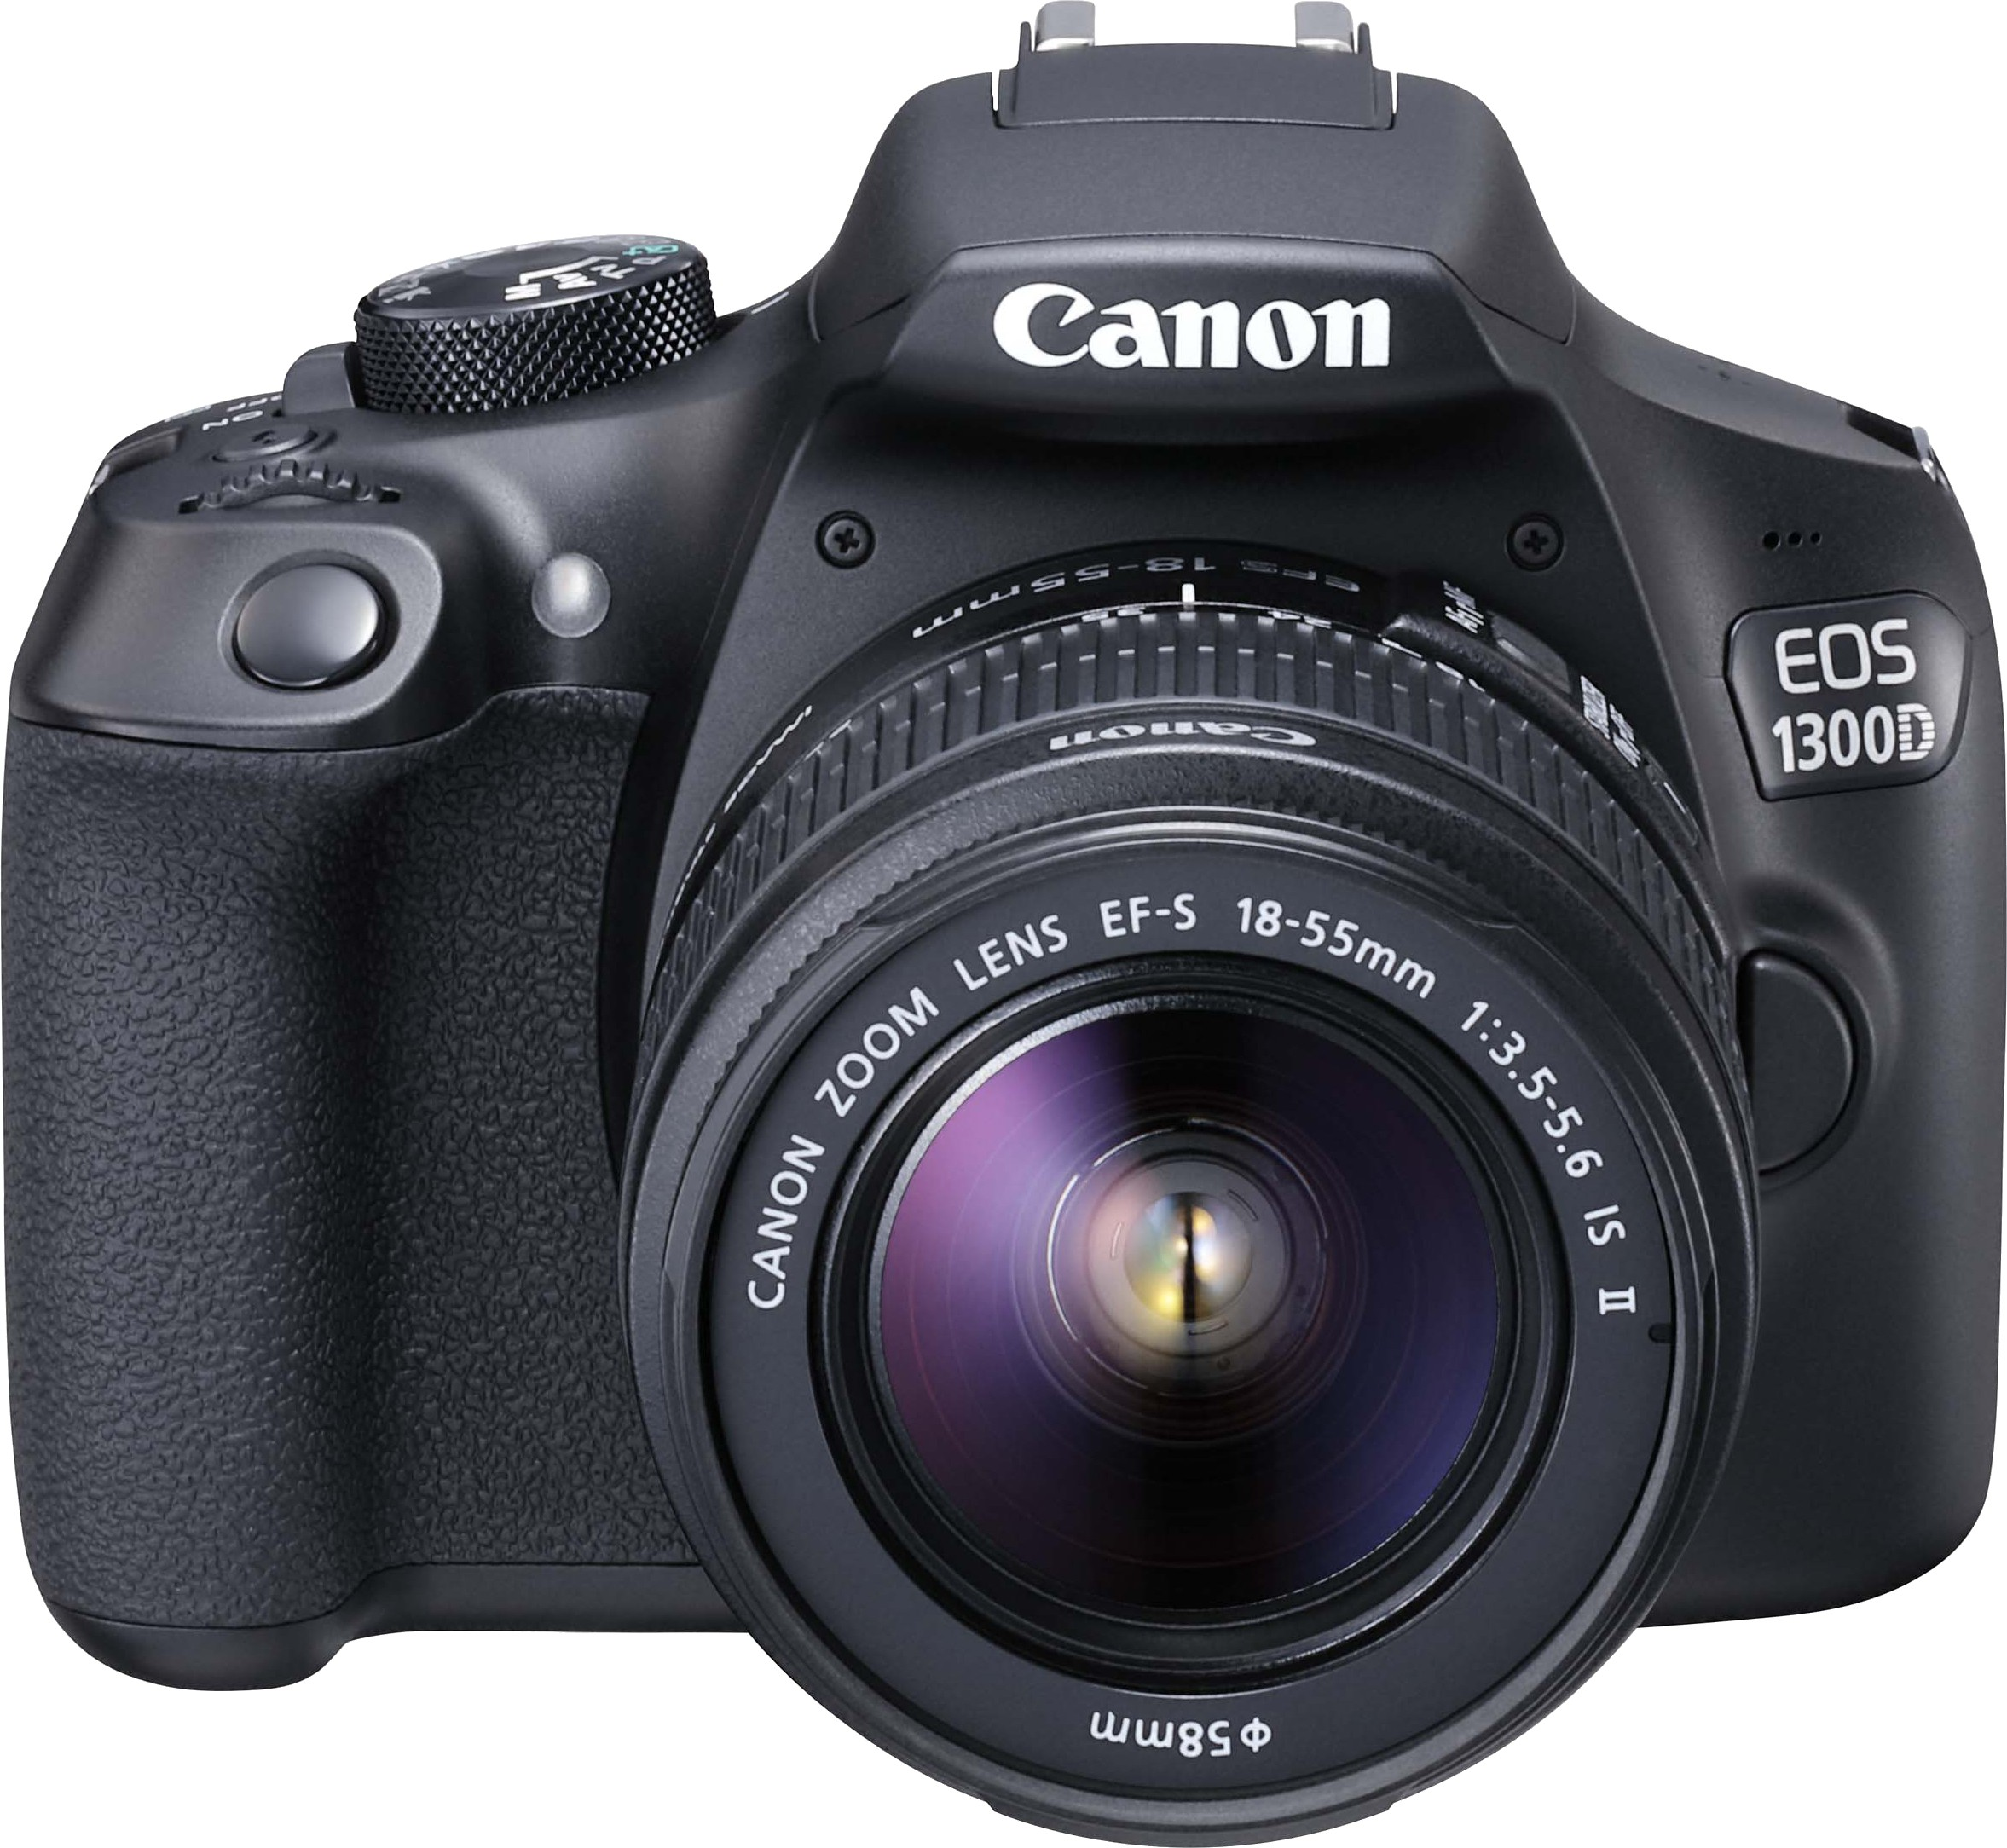 Deals | Flipkart - Canon 1300D Camera Just ₹22,080